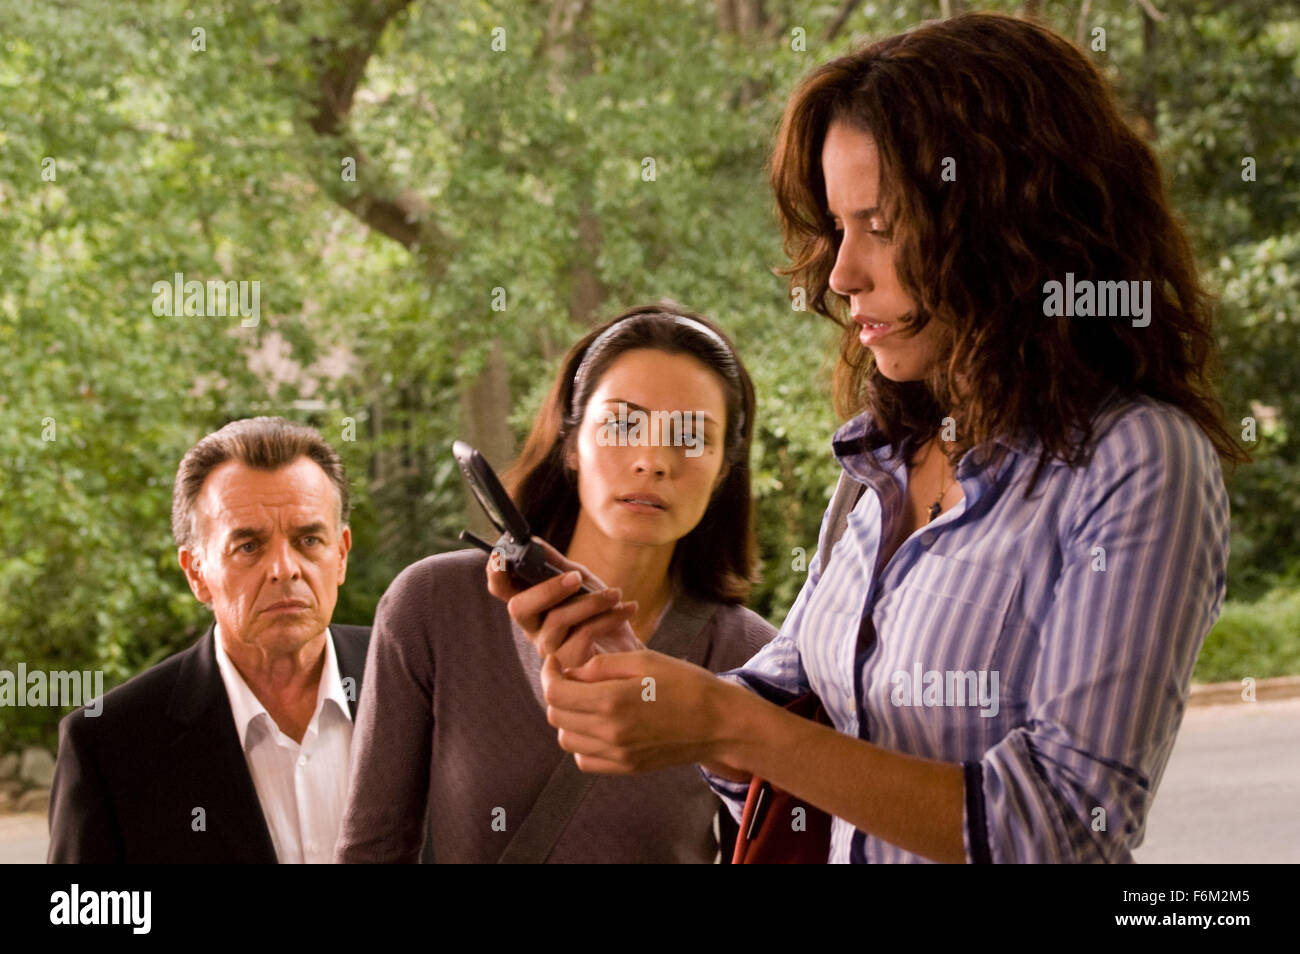 RELEASE DATE: January 4, 2008  MOVIE TITLE: One Missed Call